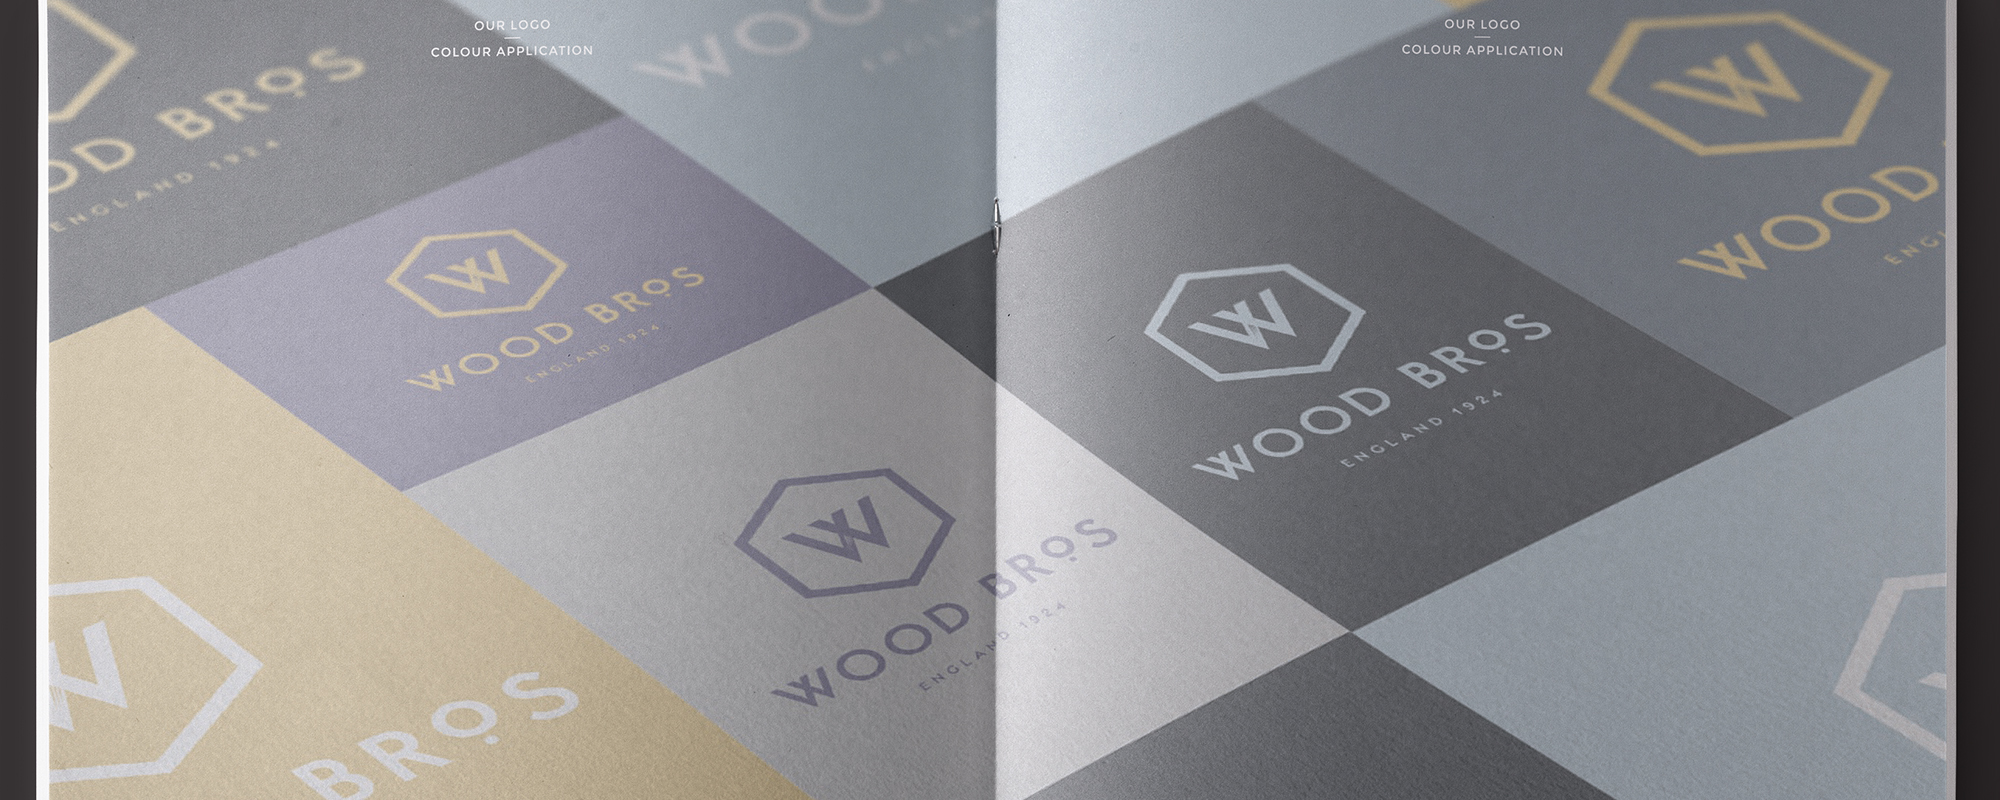 Wood_Bros_CaseStudies_BANNER1.jpg